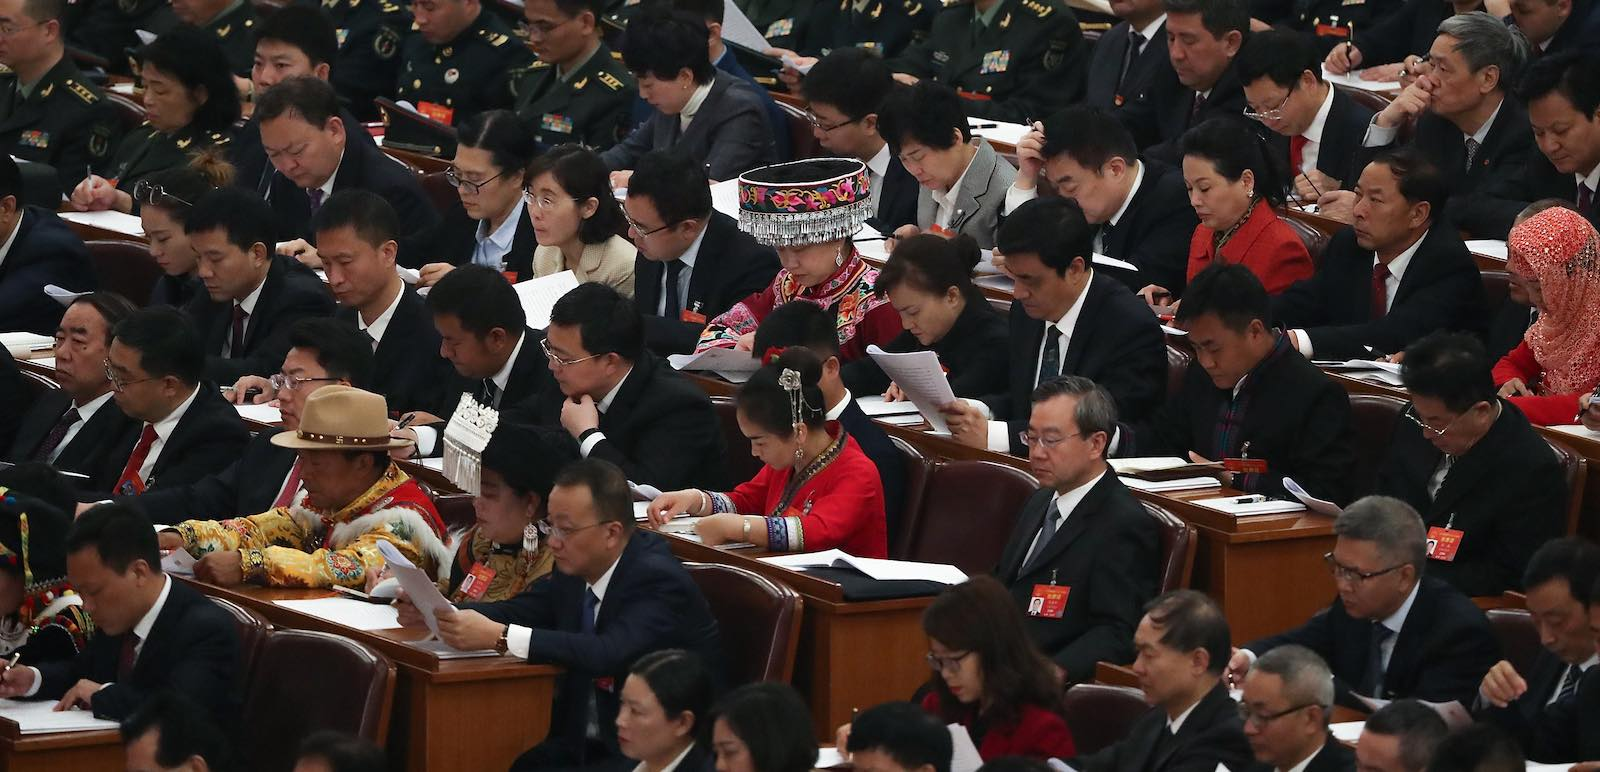 The opening of the Two Sessions at The Great Hall of People in Beijing on 5 March 2019 (Photo: Andrea Verdelli/Getty)